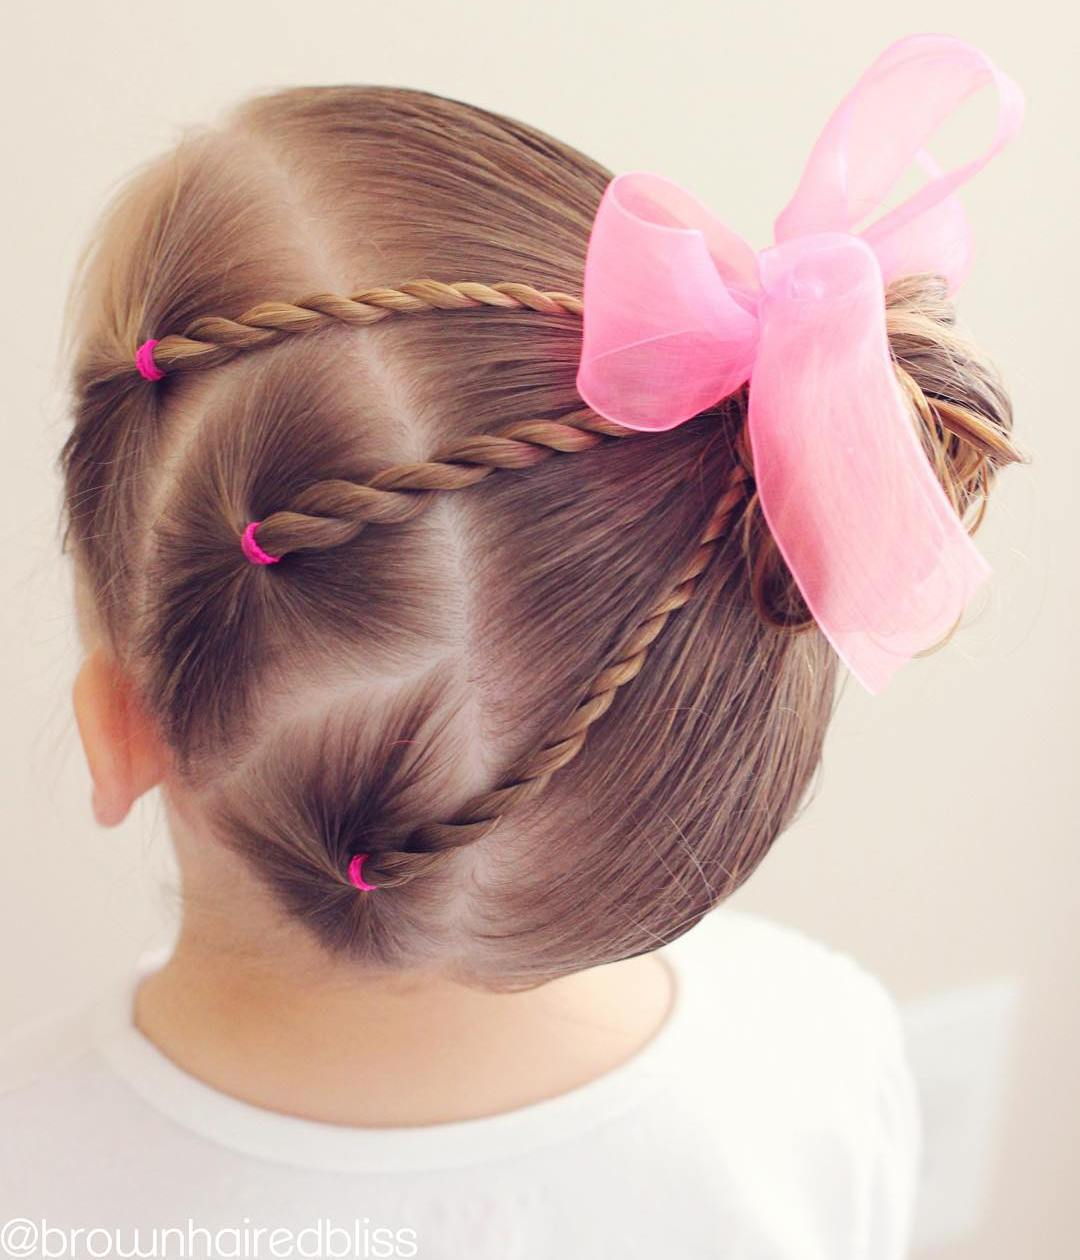 Awe Inspiring 40 Cool Hairstyles For Little Girls On Any Occasion Schematic Wiring Diagrams Amerangerunnerswayorg